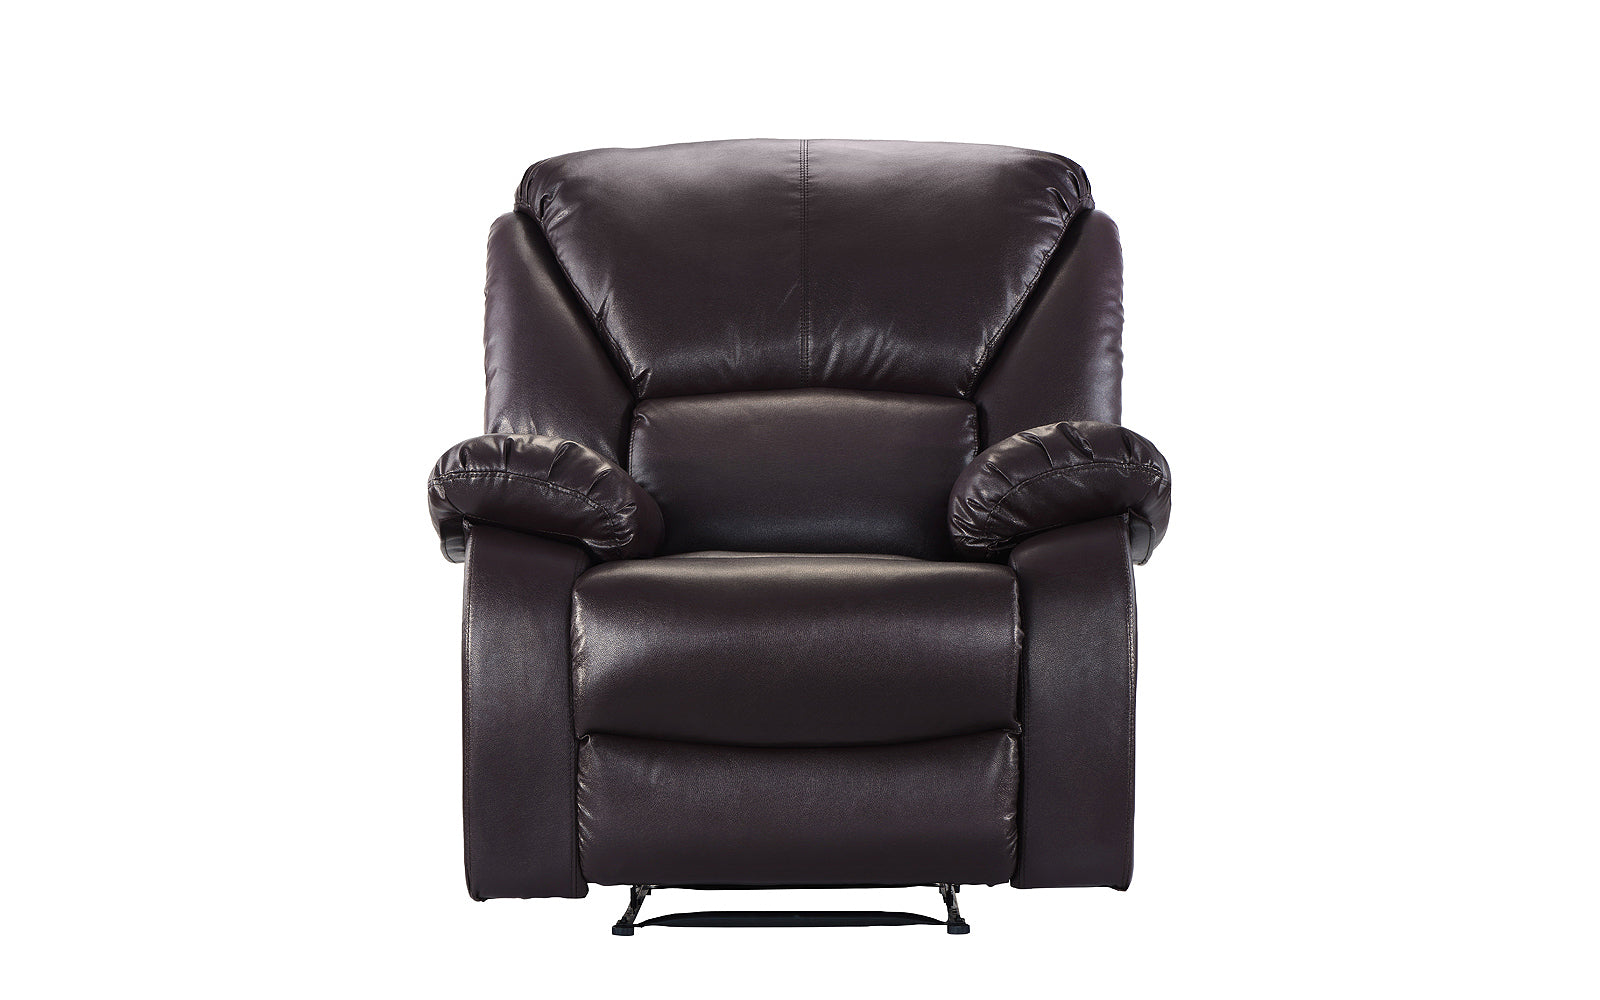 Superieur ... Bach Full Body Massage Recliner Chair Brown ...